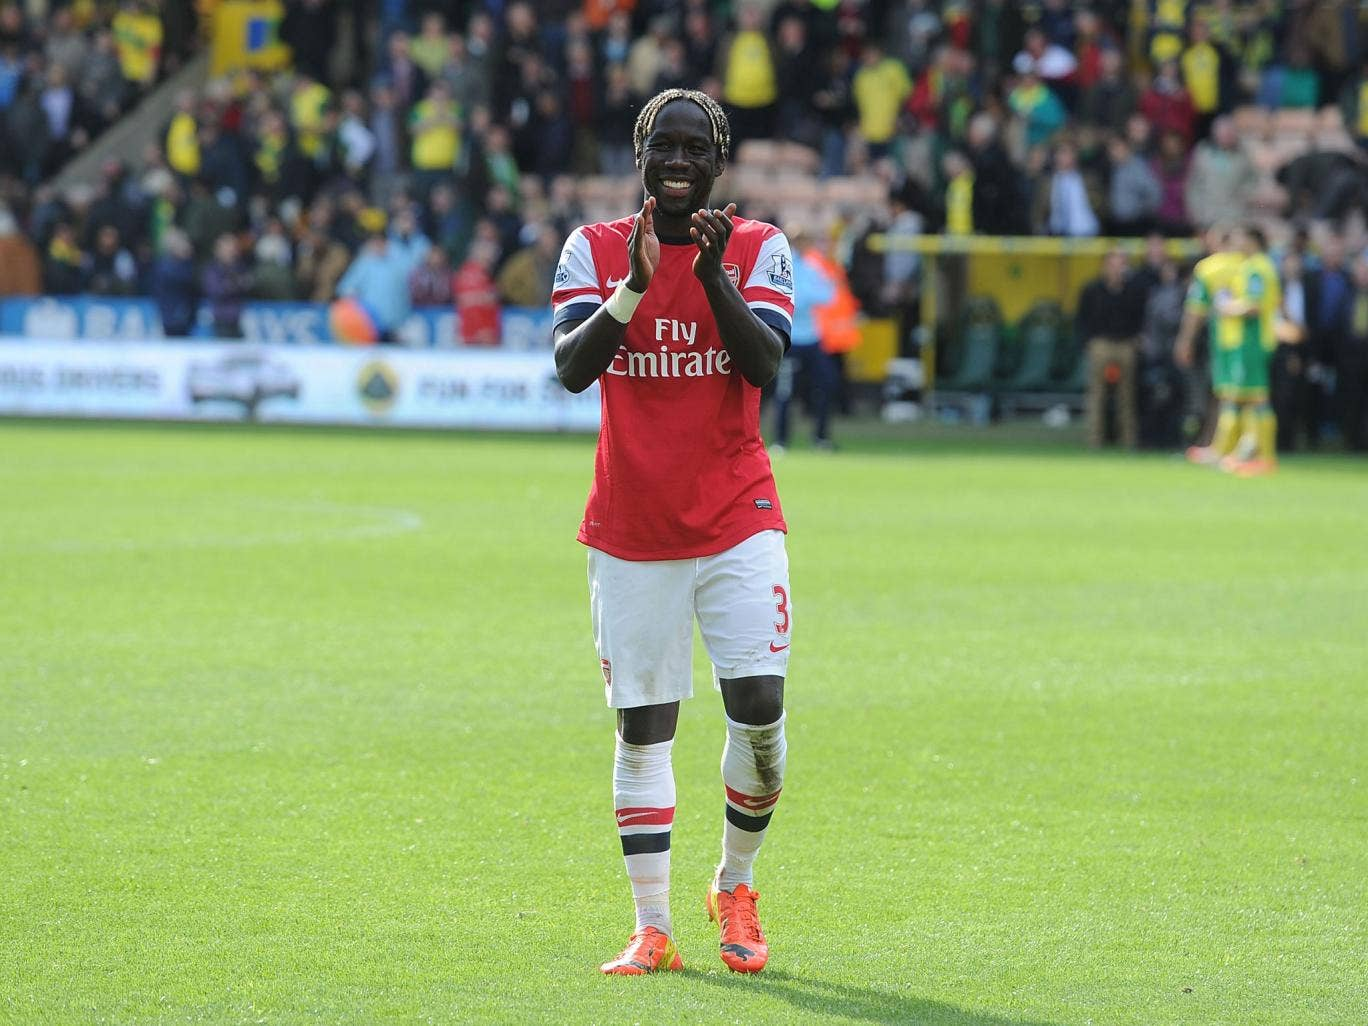 Bacary Sagna looks likely to join Manchester City when Arsenal contract expires